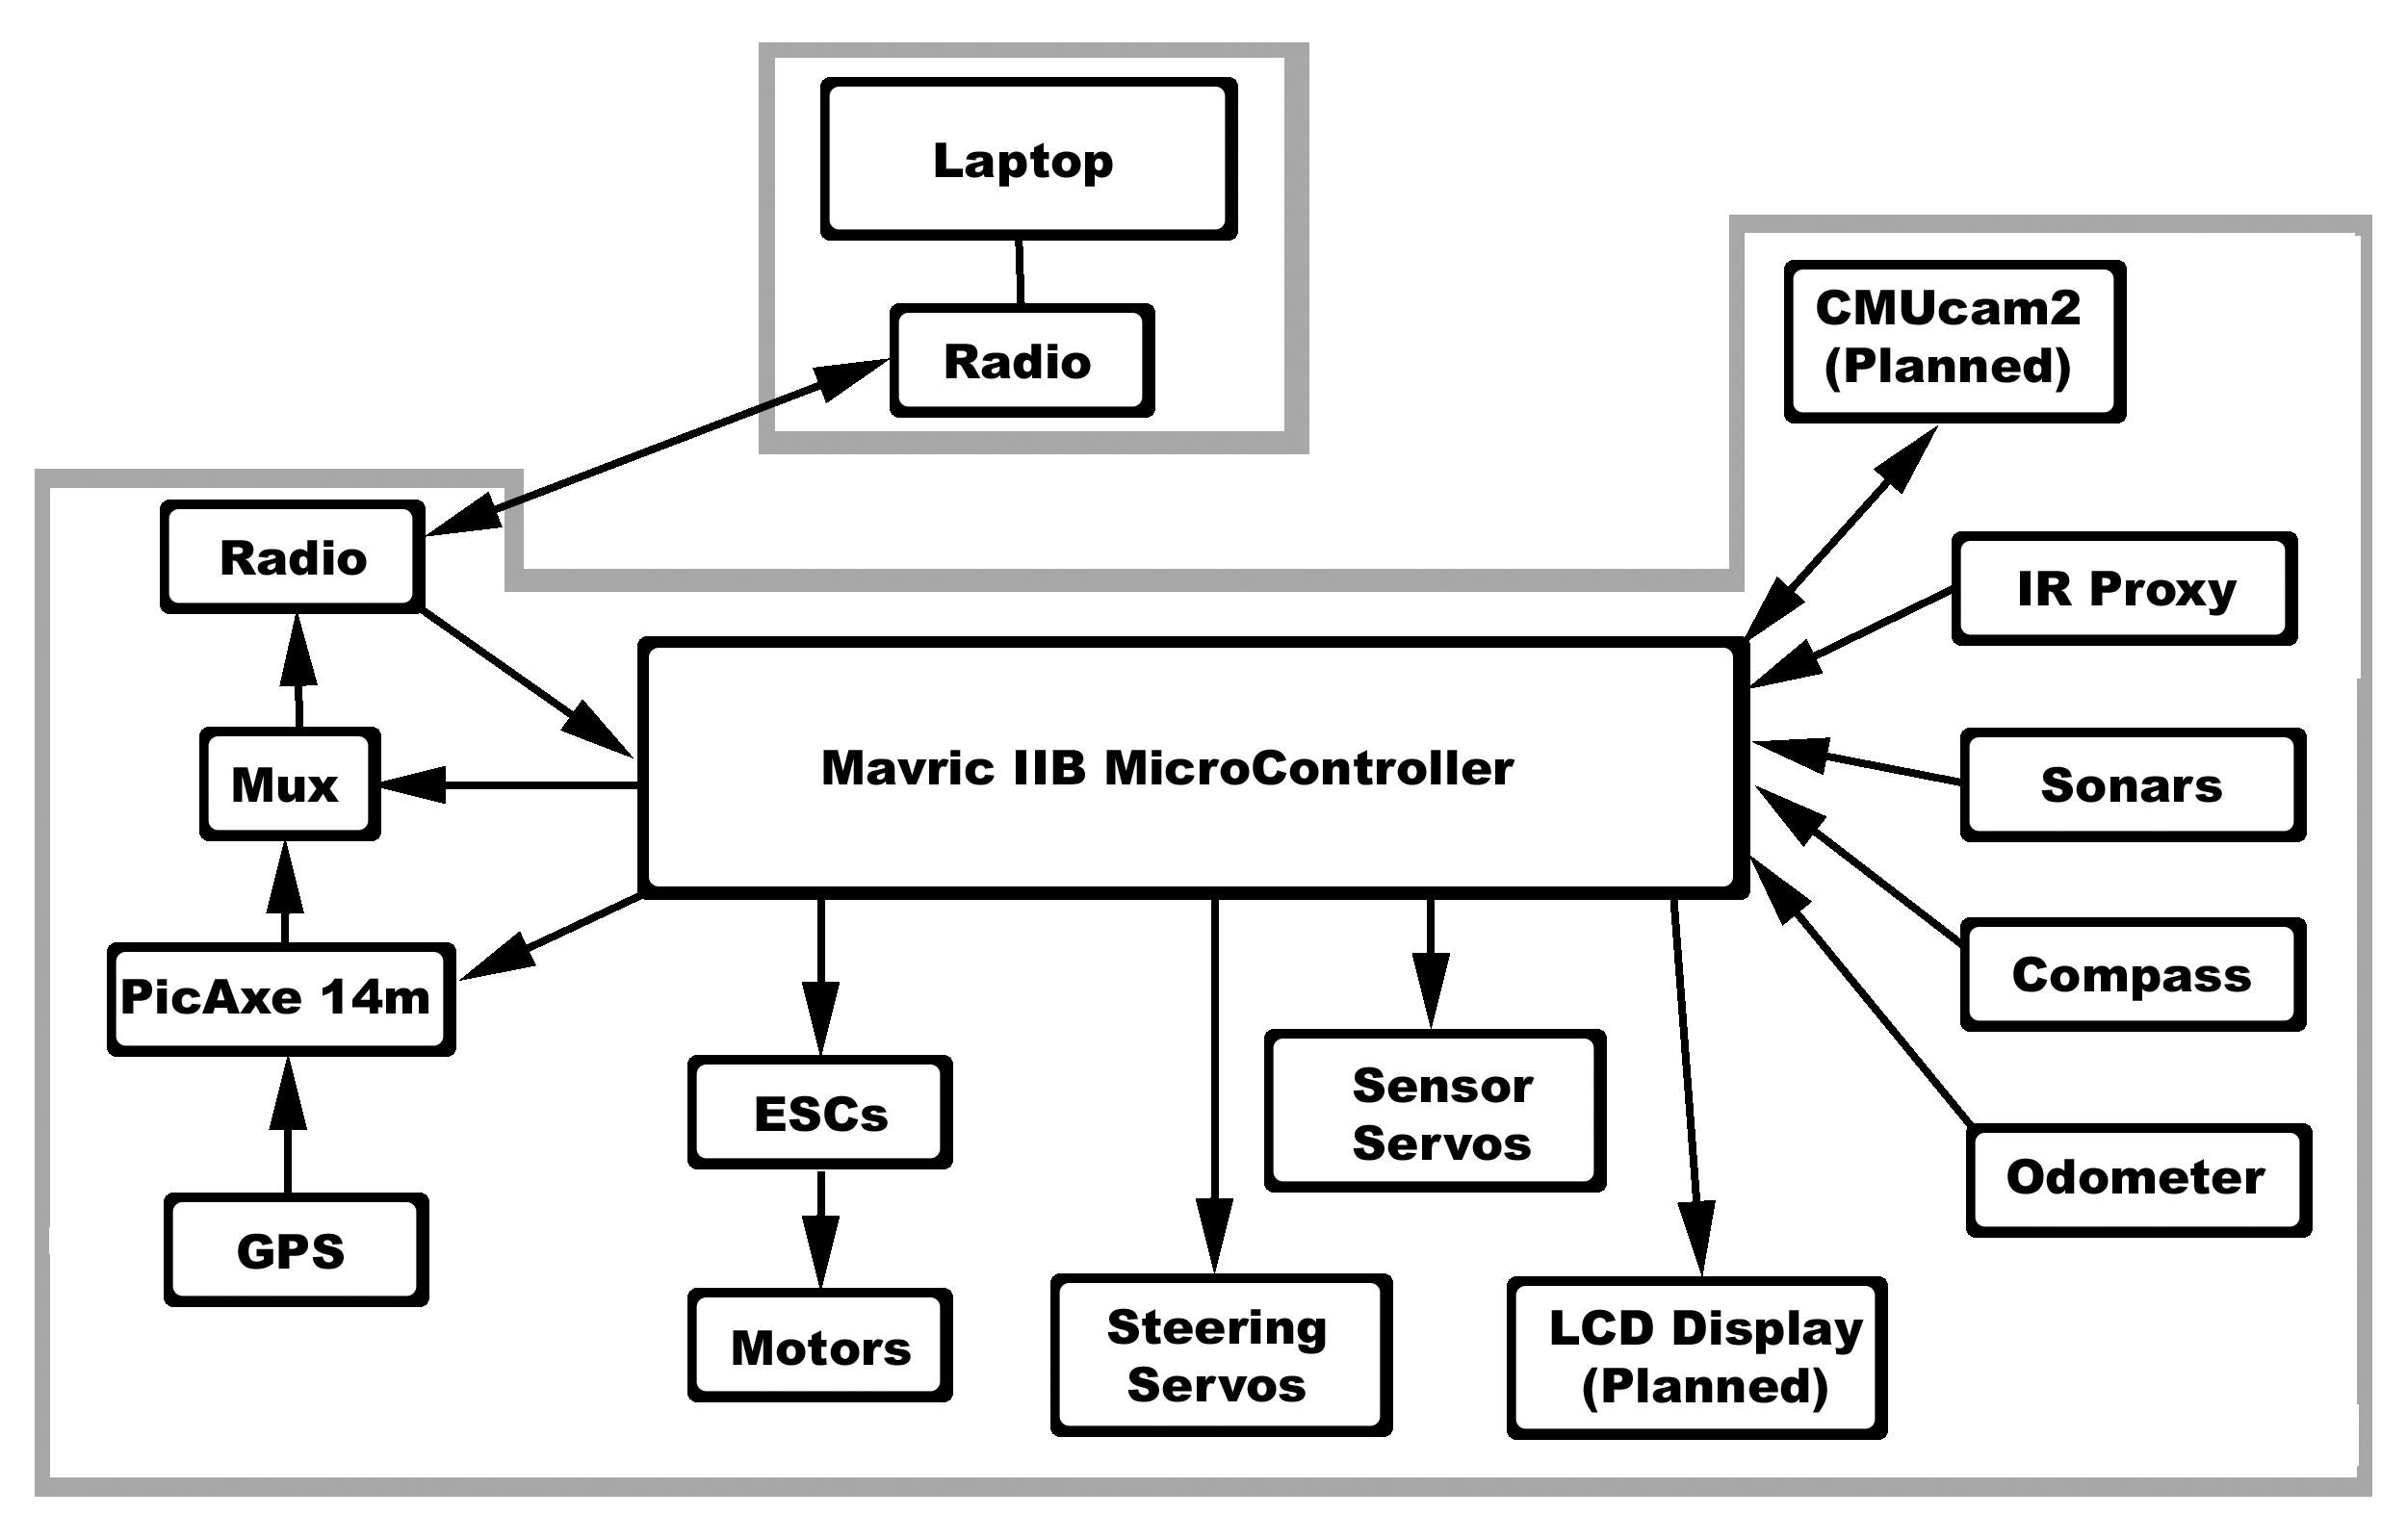 Microsoft Block Diagram